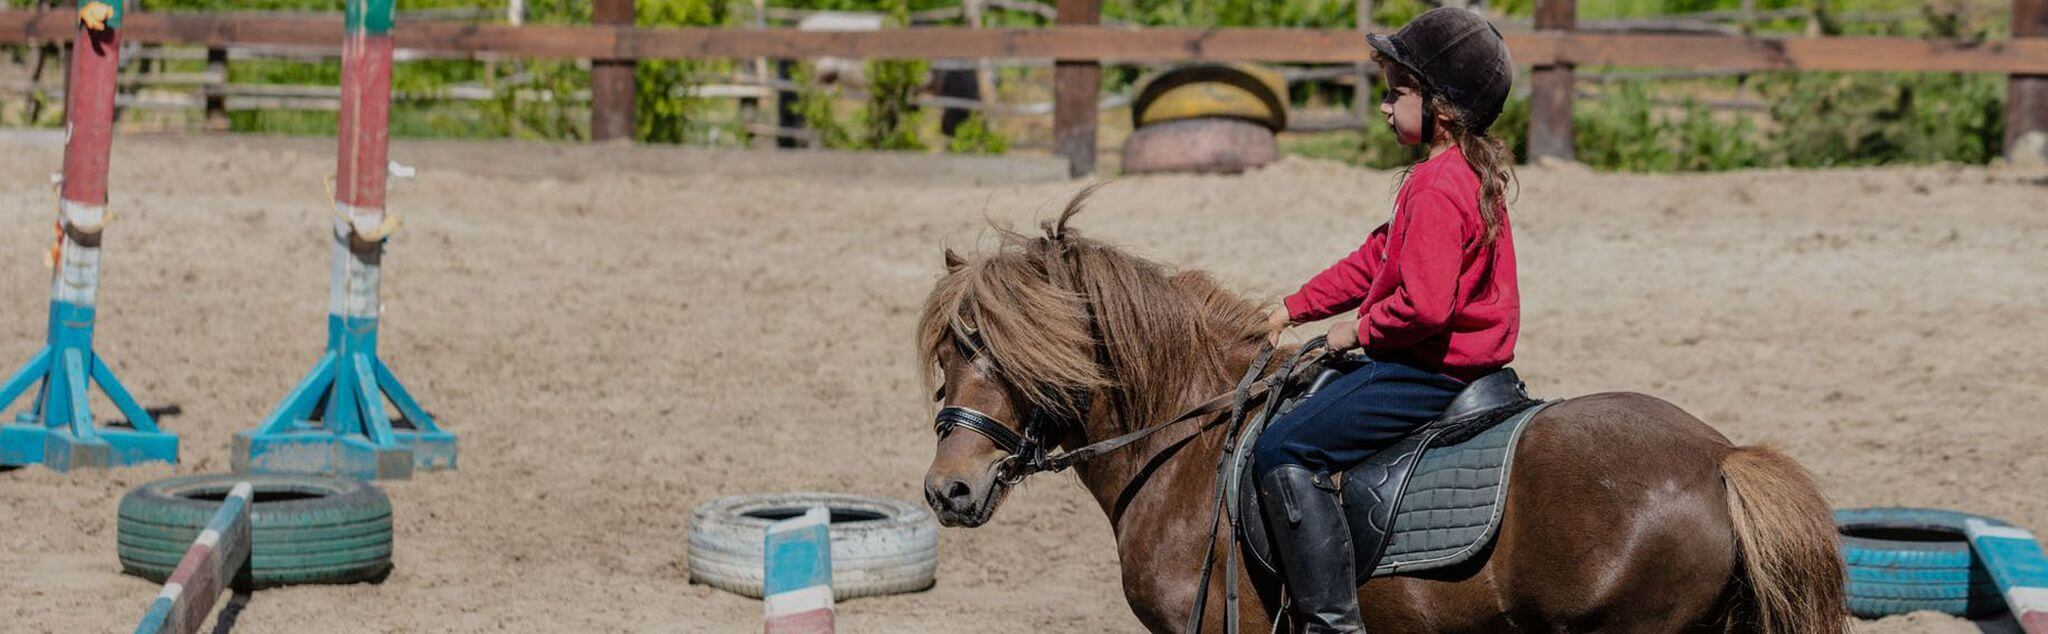 Horse Riding Lessons in Barcelona